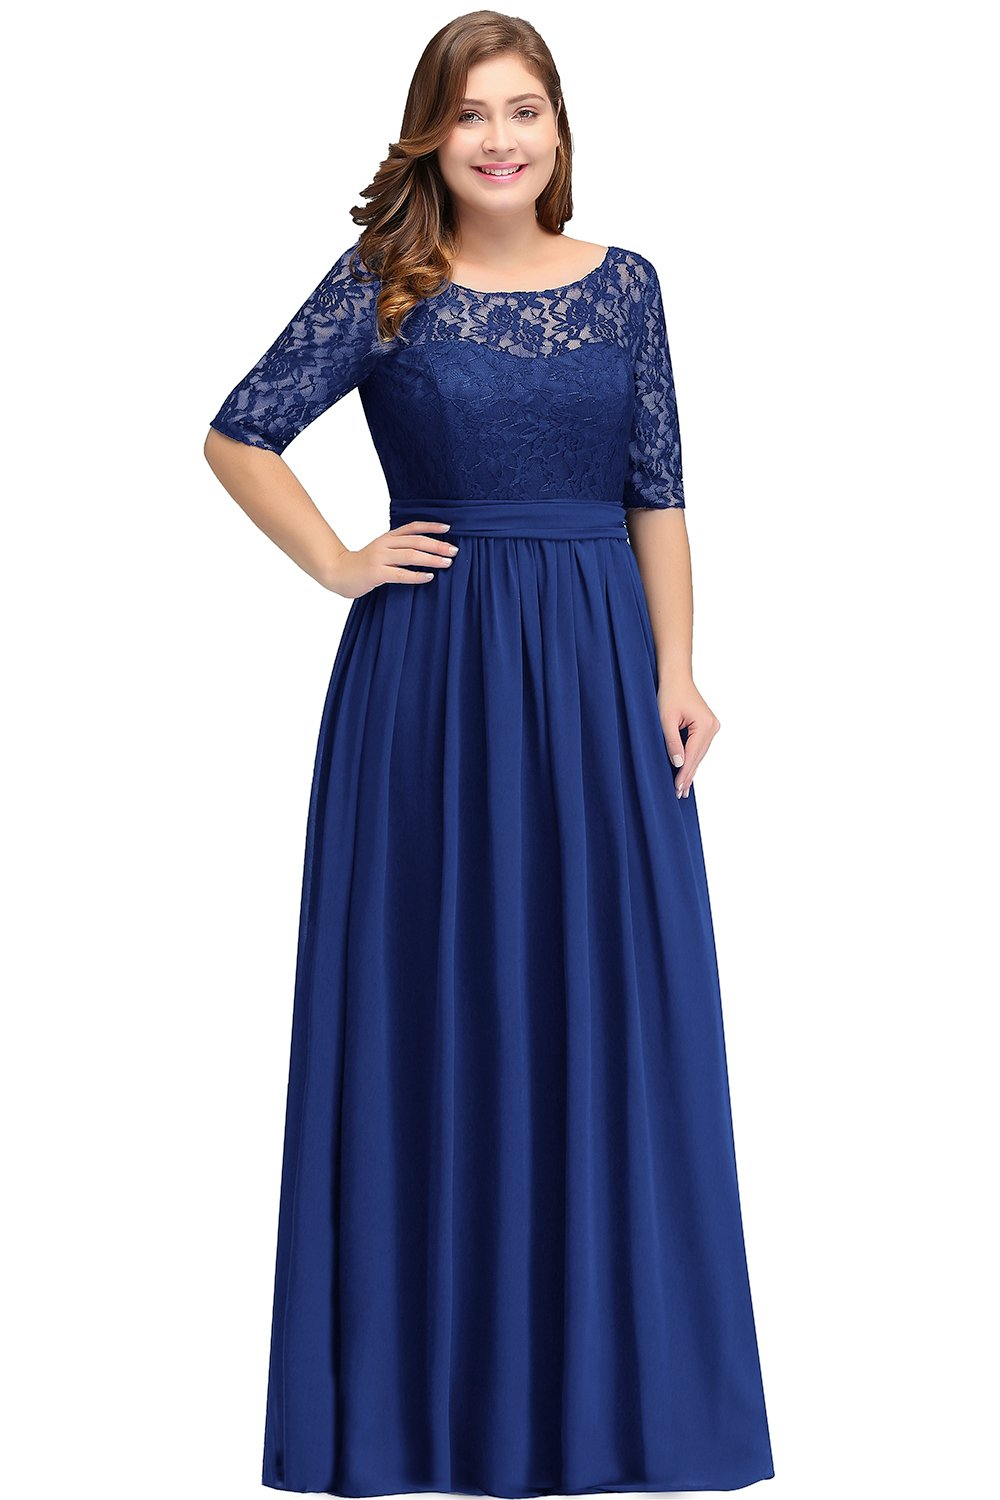 Women Plus Size Long Sleeve Mother The Bride Dress Royal Blue 18W